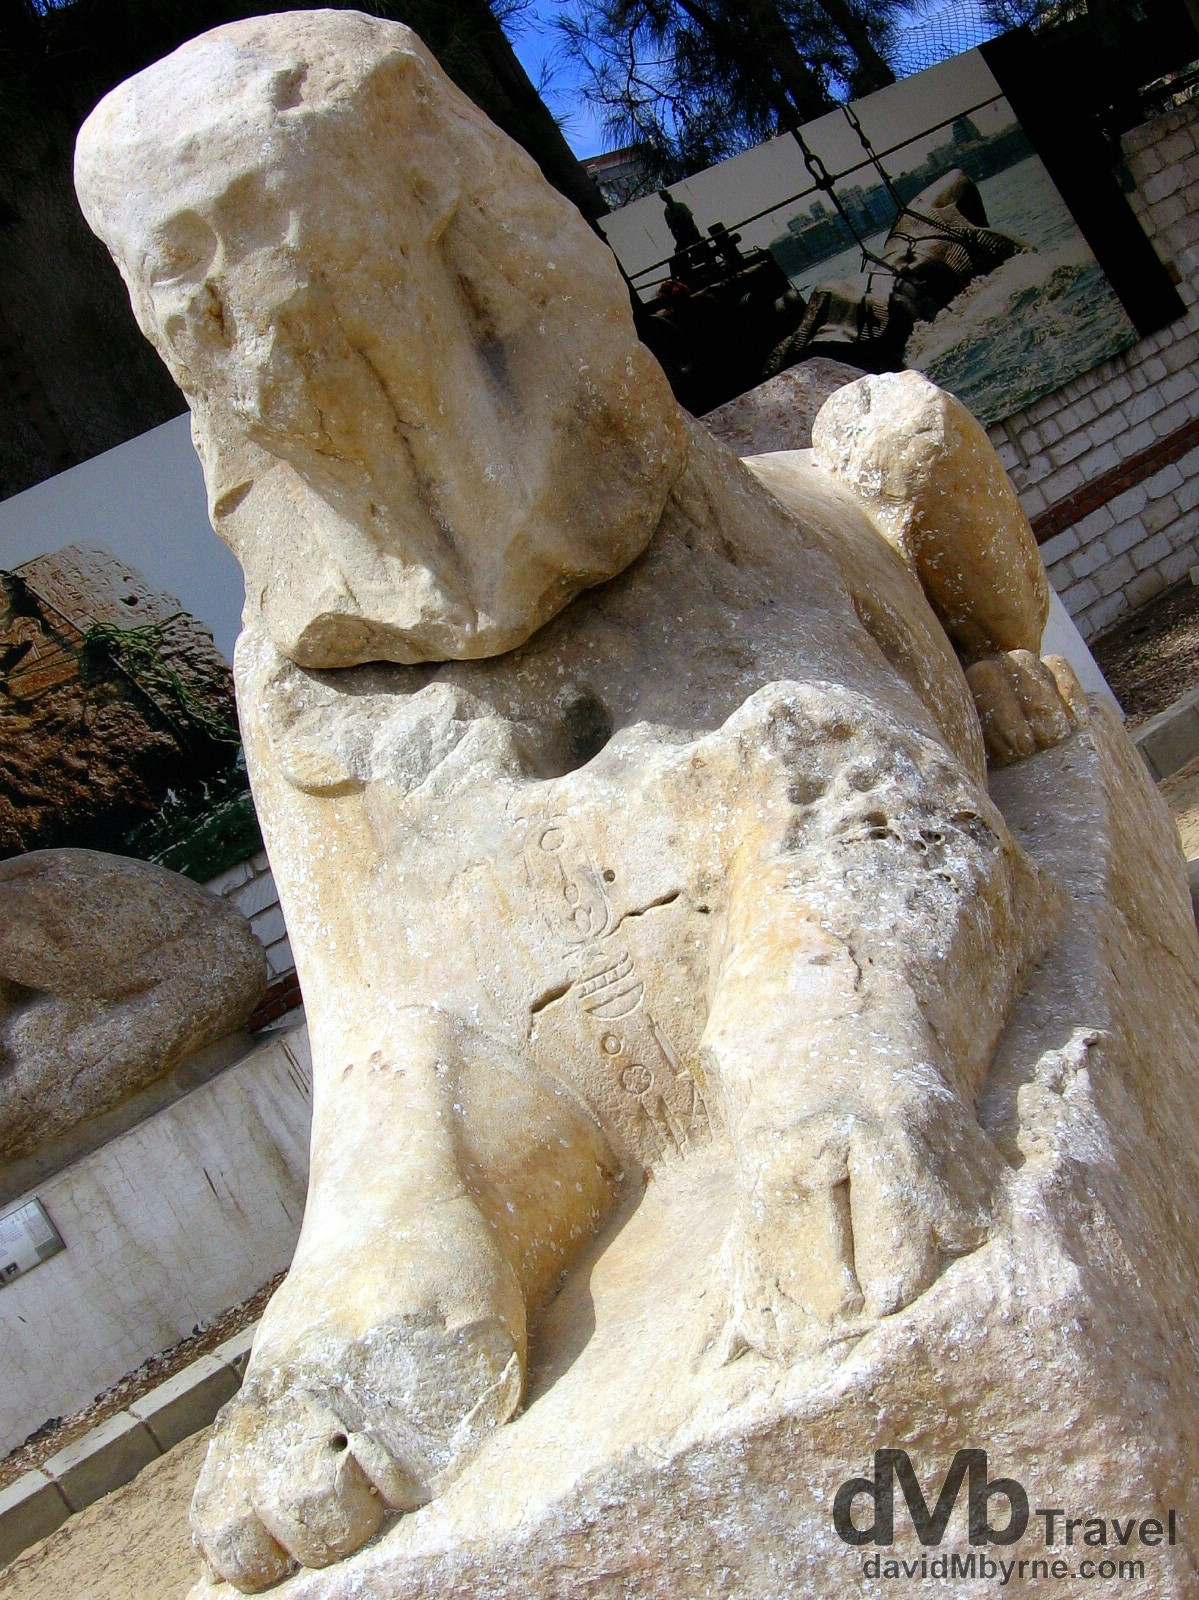 A water worn Sphinx on display in the grounds of the Roman Amphitheater in Alexandria, Egypt. April 16, 2008.